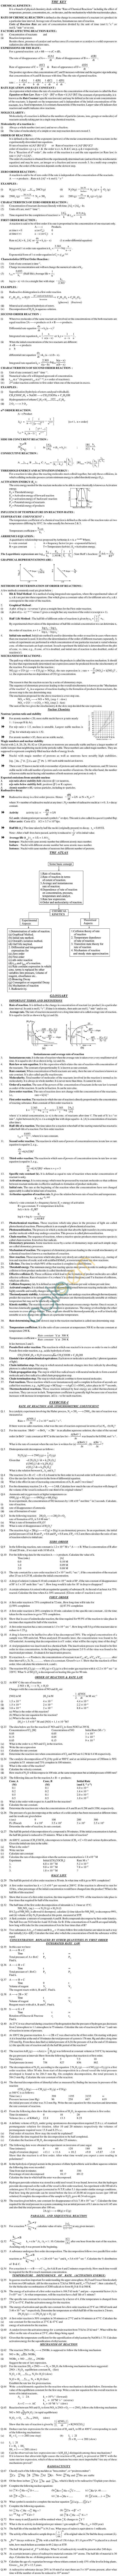 Chemistry Study Material - Chapter 10